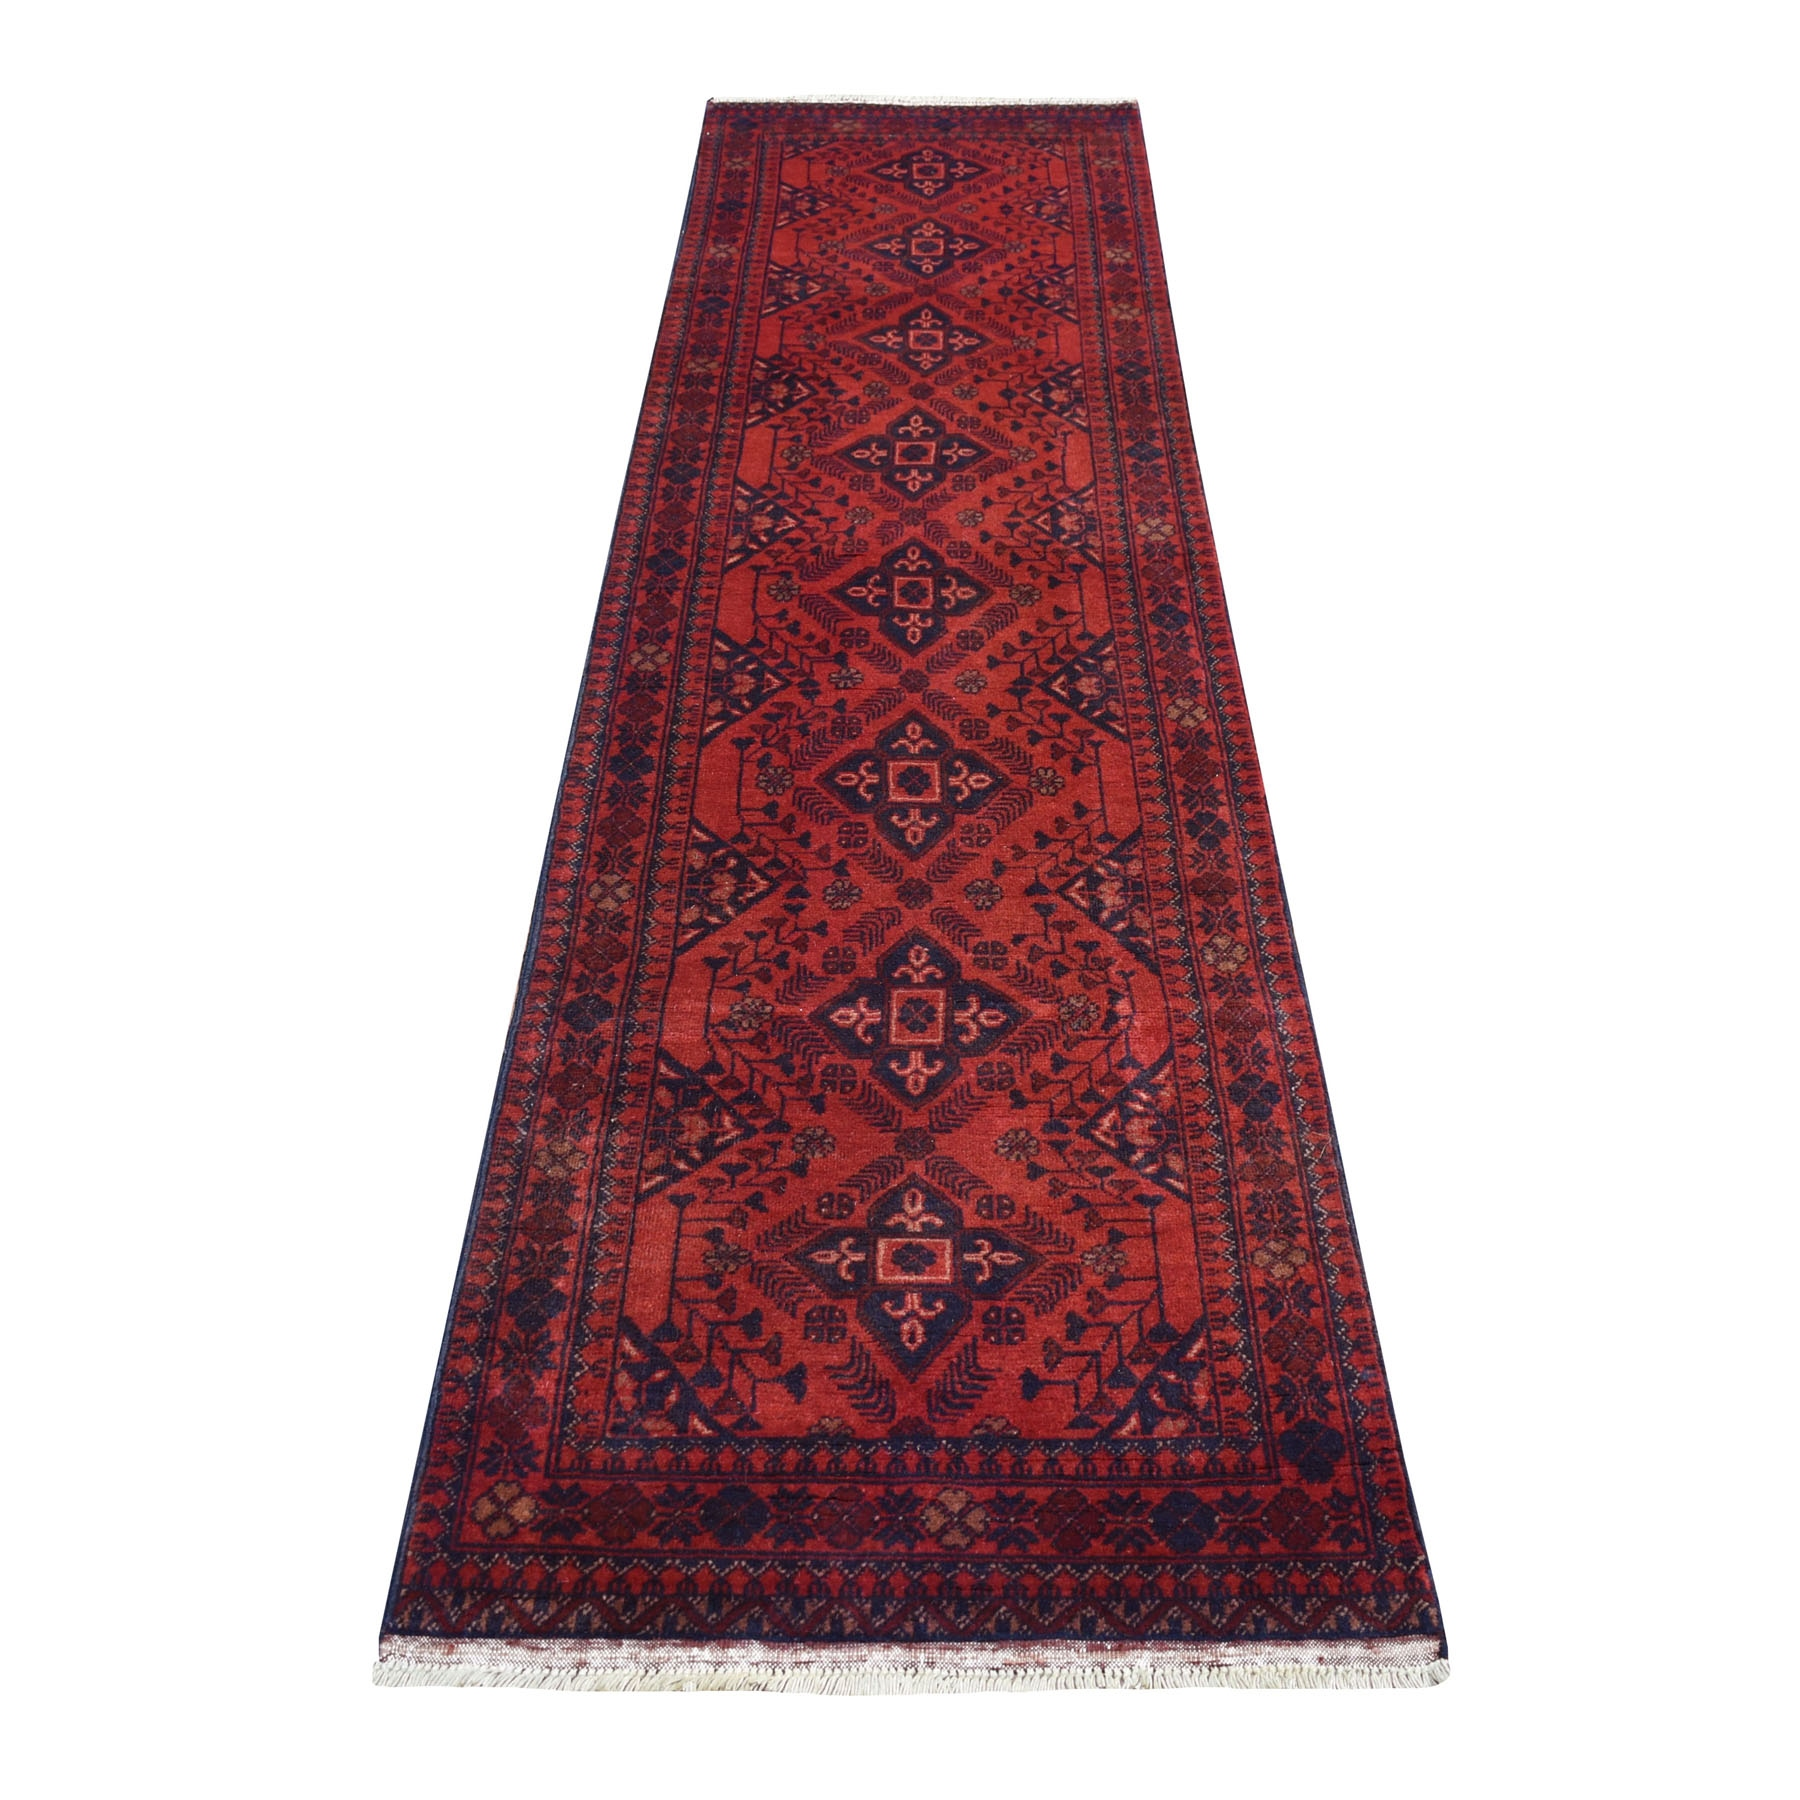 "2'6""X9'6"" Deep And Saturated Red Geometric Afghan Andkhoy Runner Pure Wool Hand Knotted Oriental Rug moaecee8"